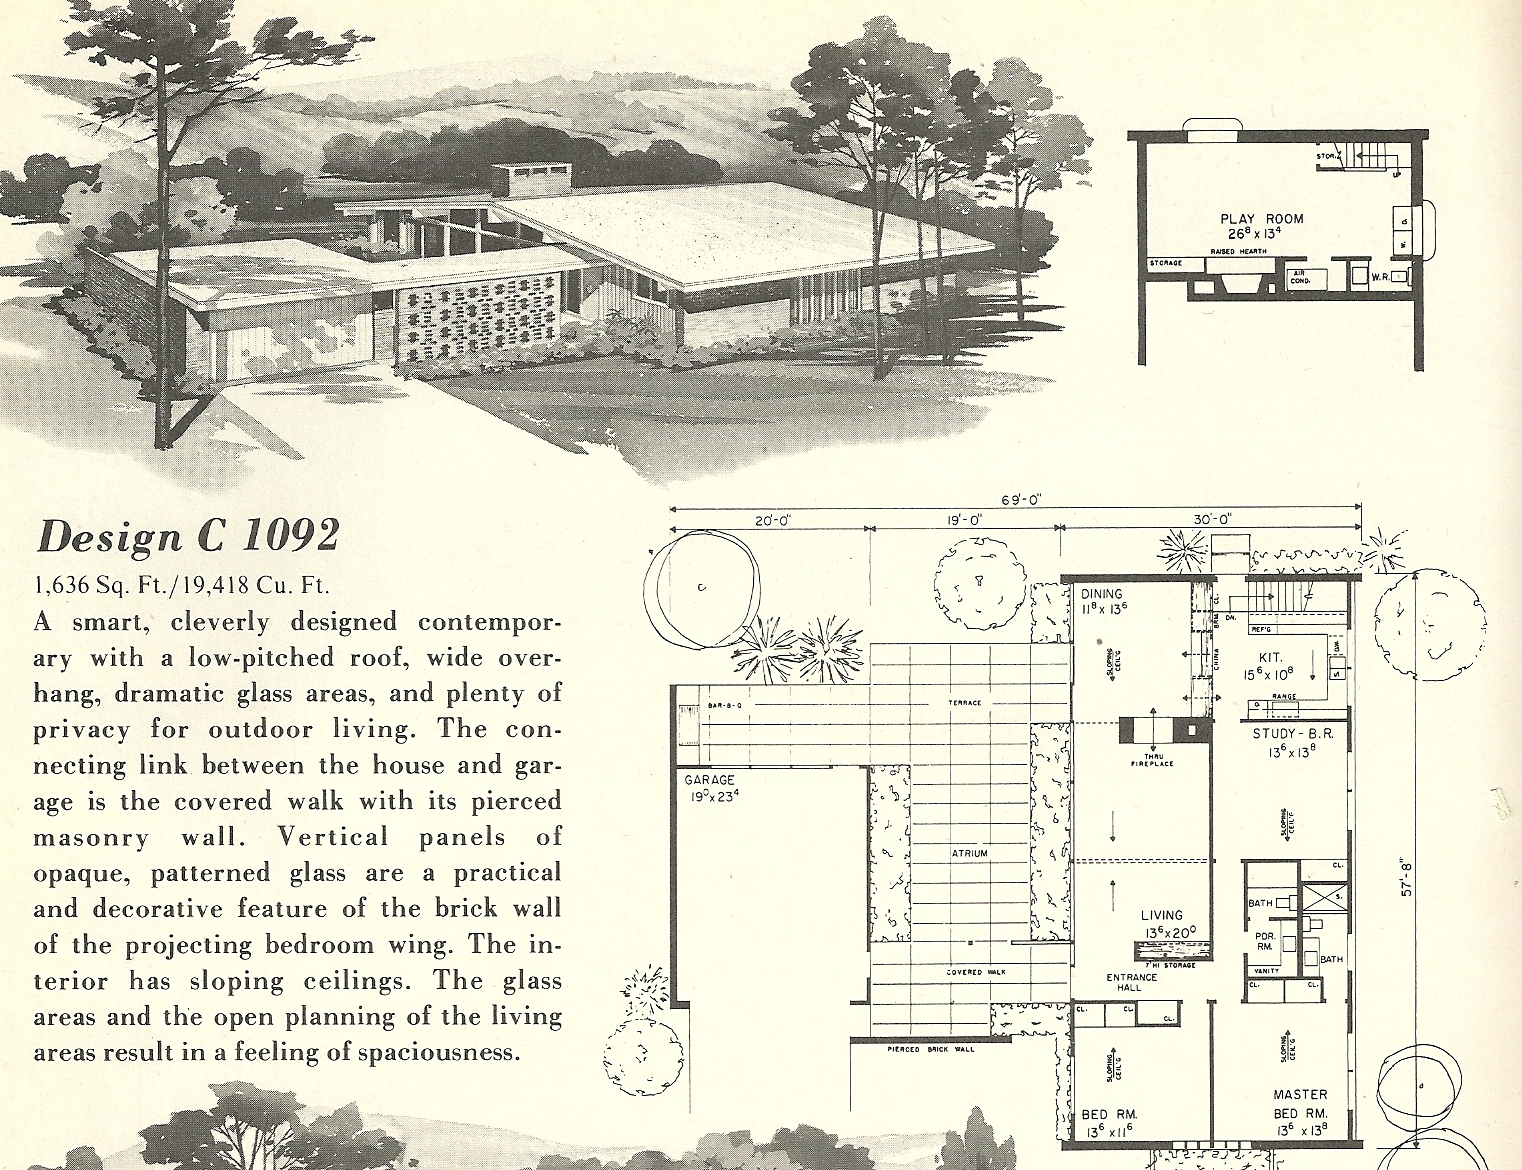 Vintage house plans 1092 antique alter ego Vintage home architecture